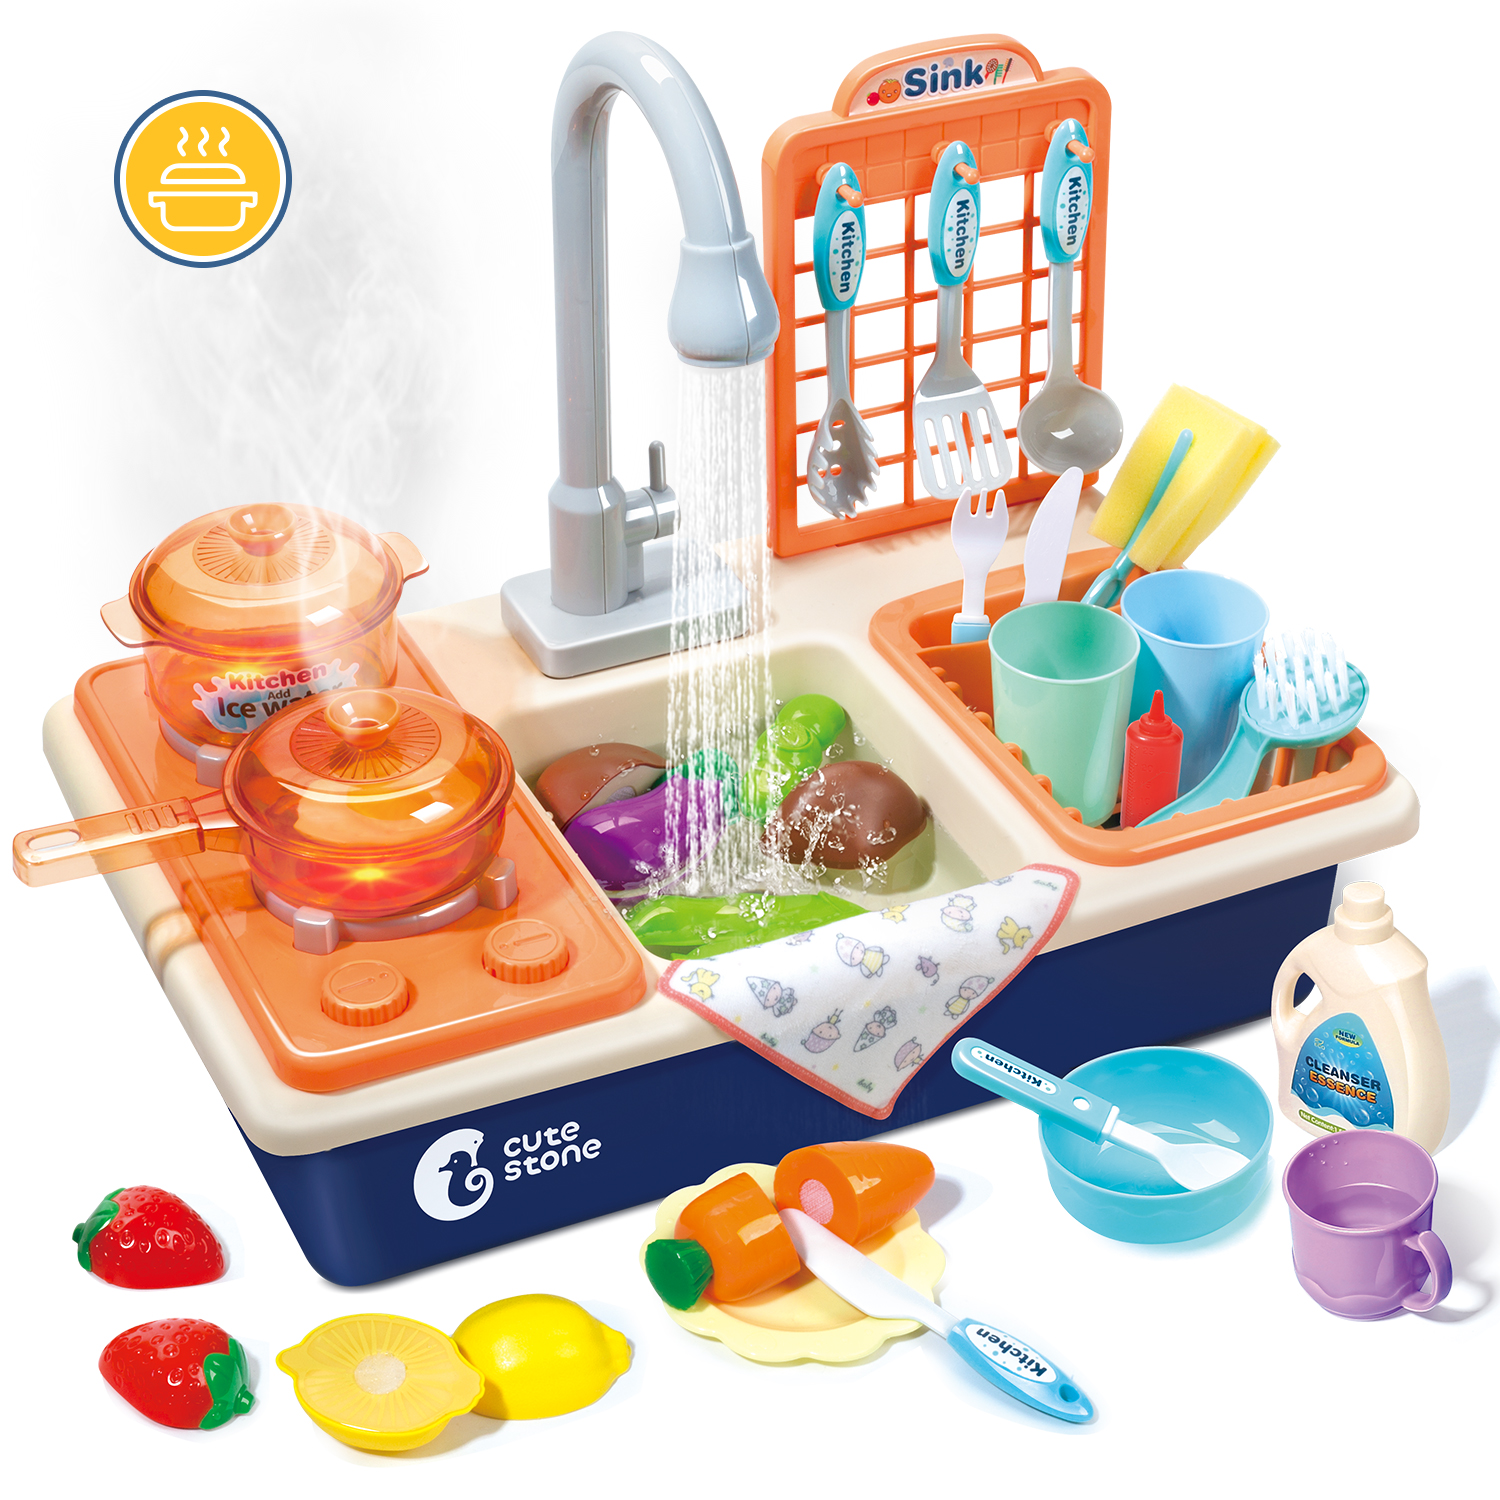 toy kitchen sink with 26 piece accessory play set sink toy for kids with running water play house role play